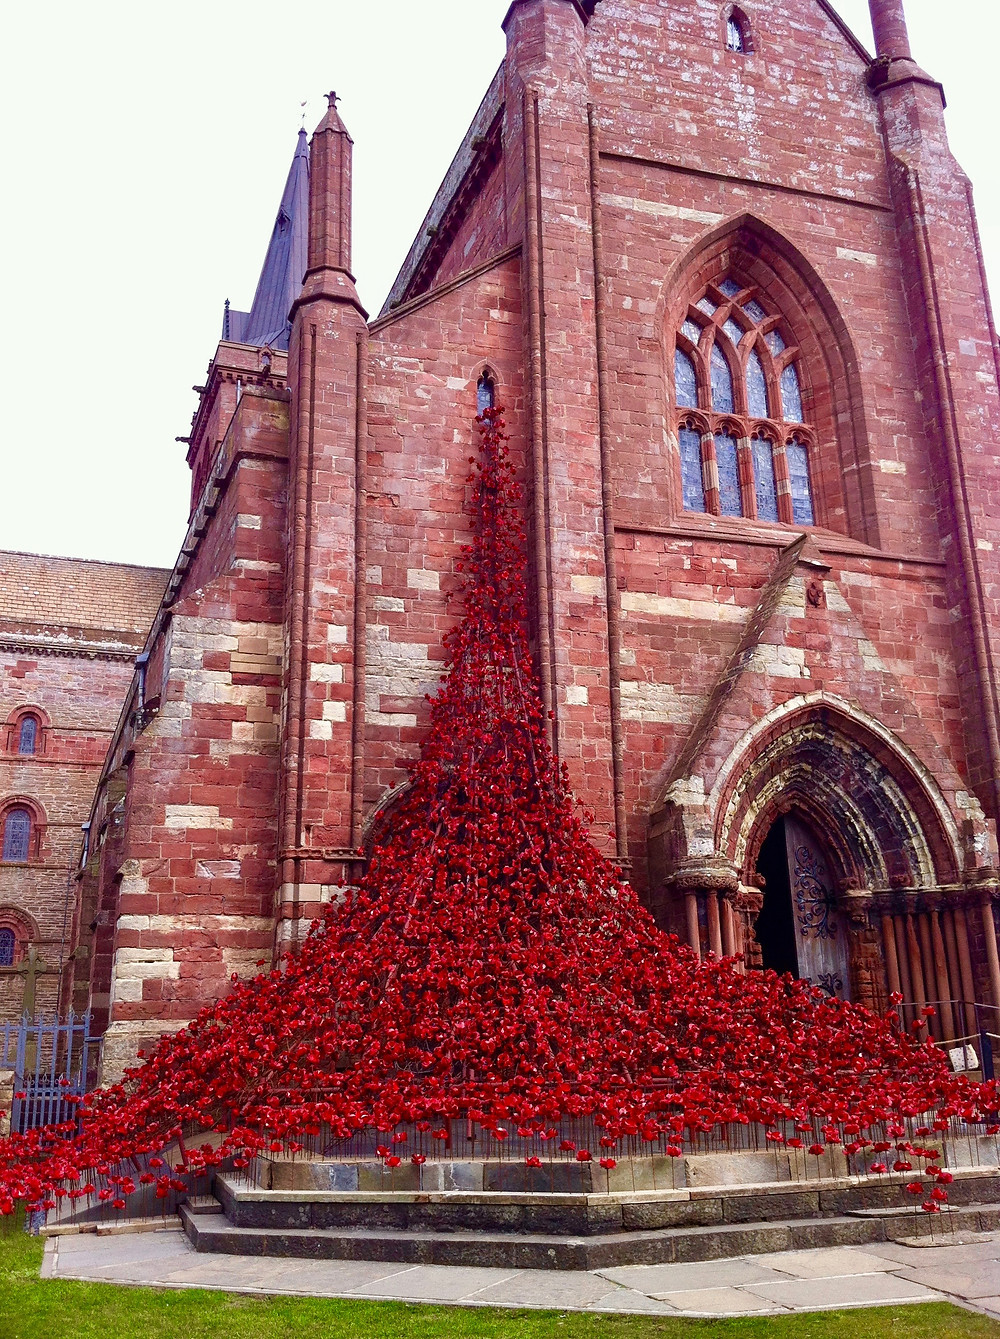 Art installation of poppies cascading from the top window of a church